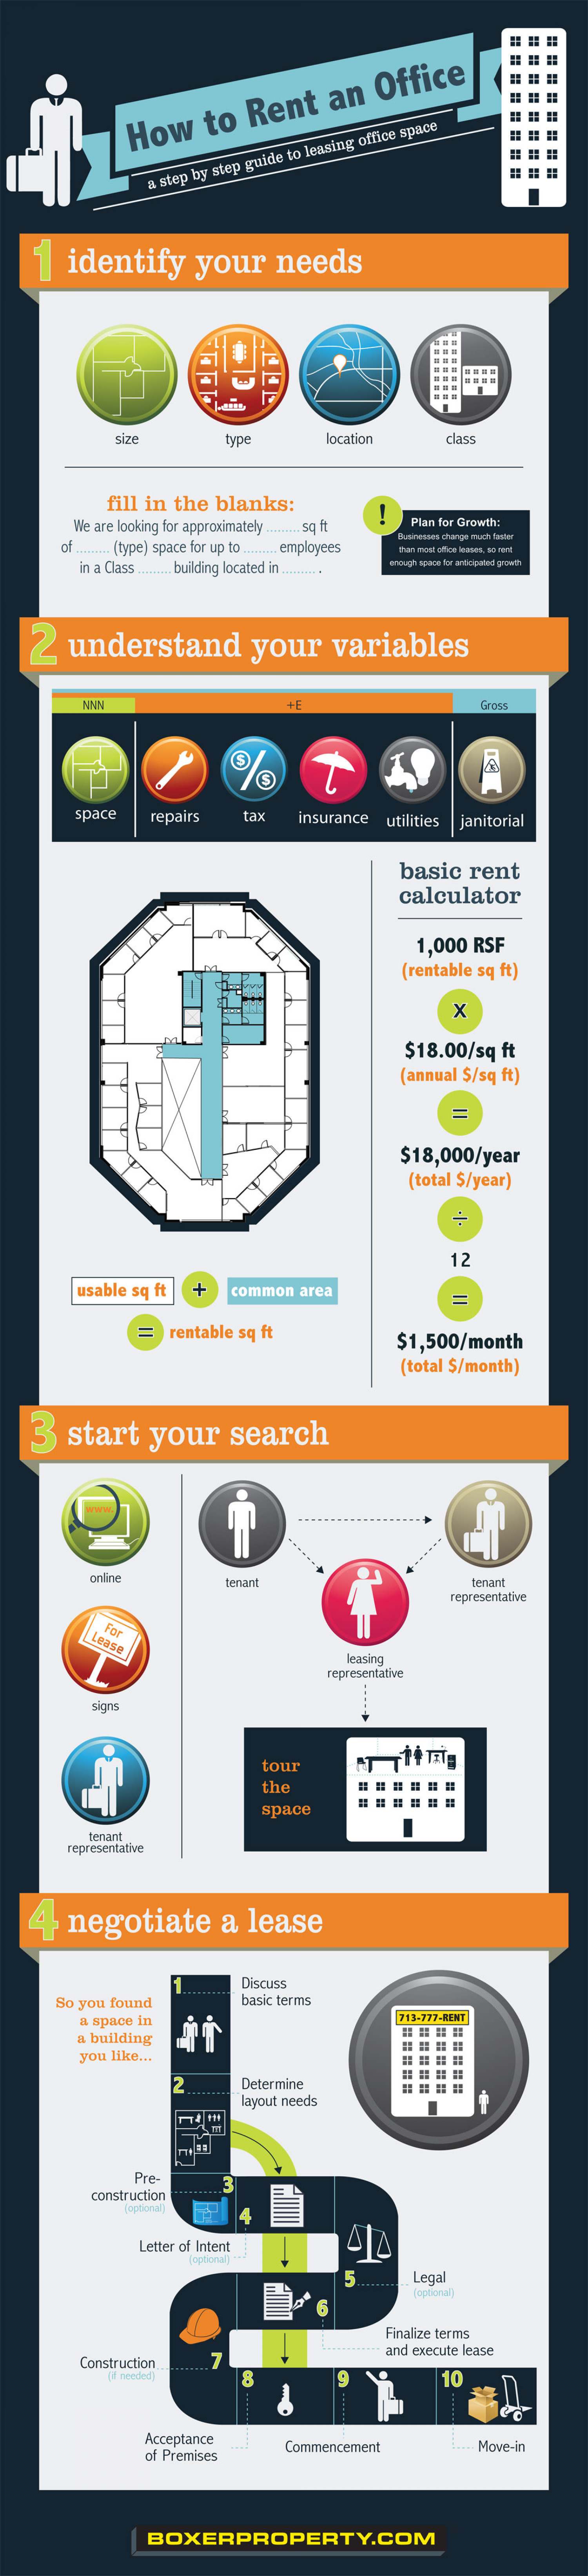 How to Rent an Office Infographic